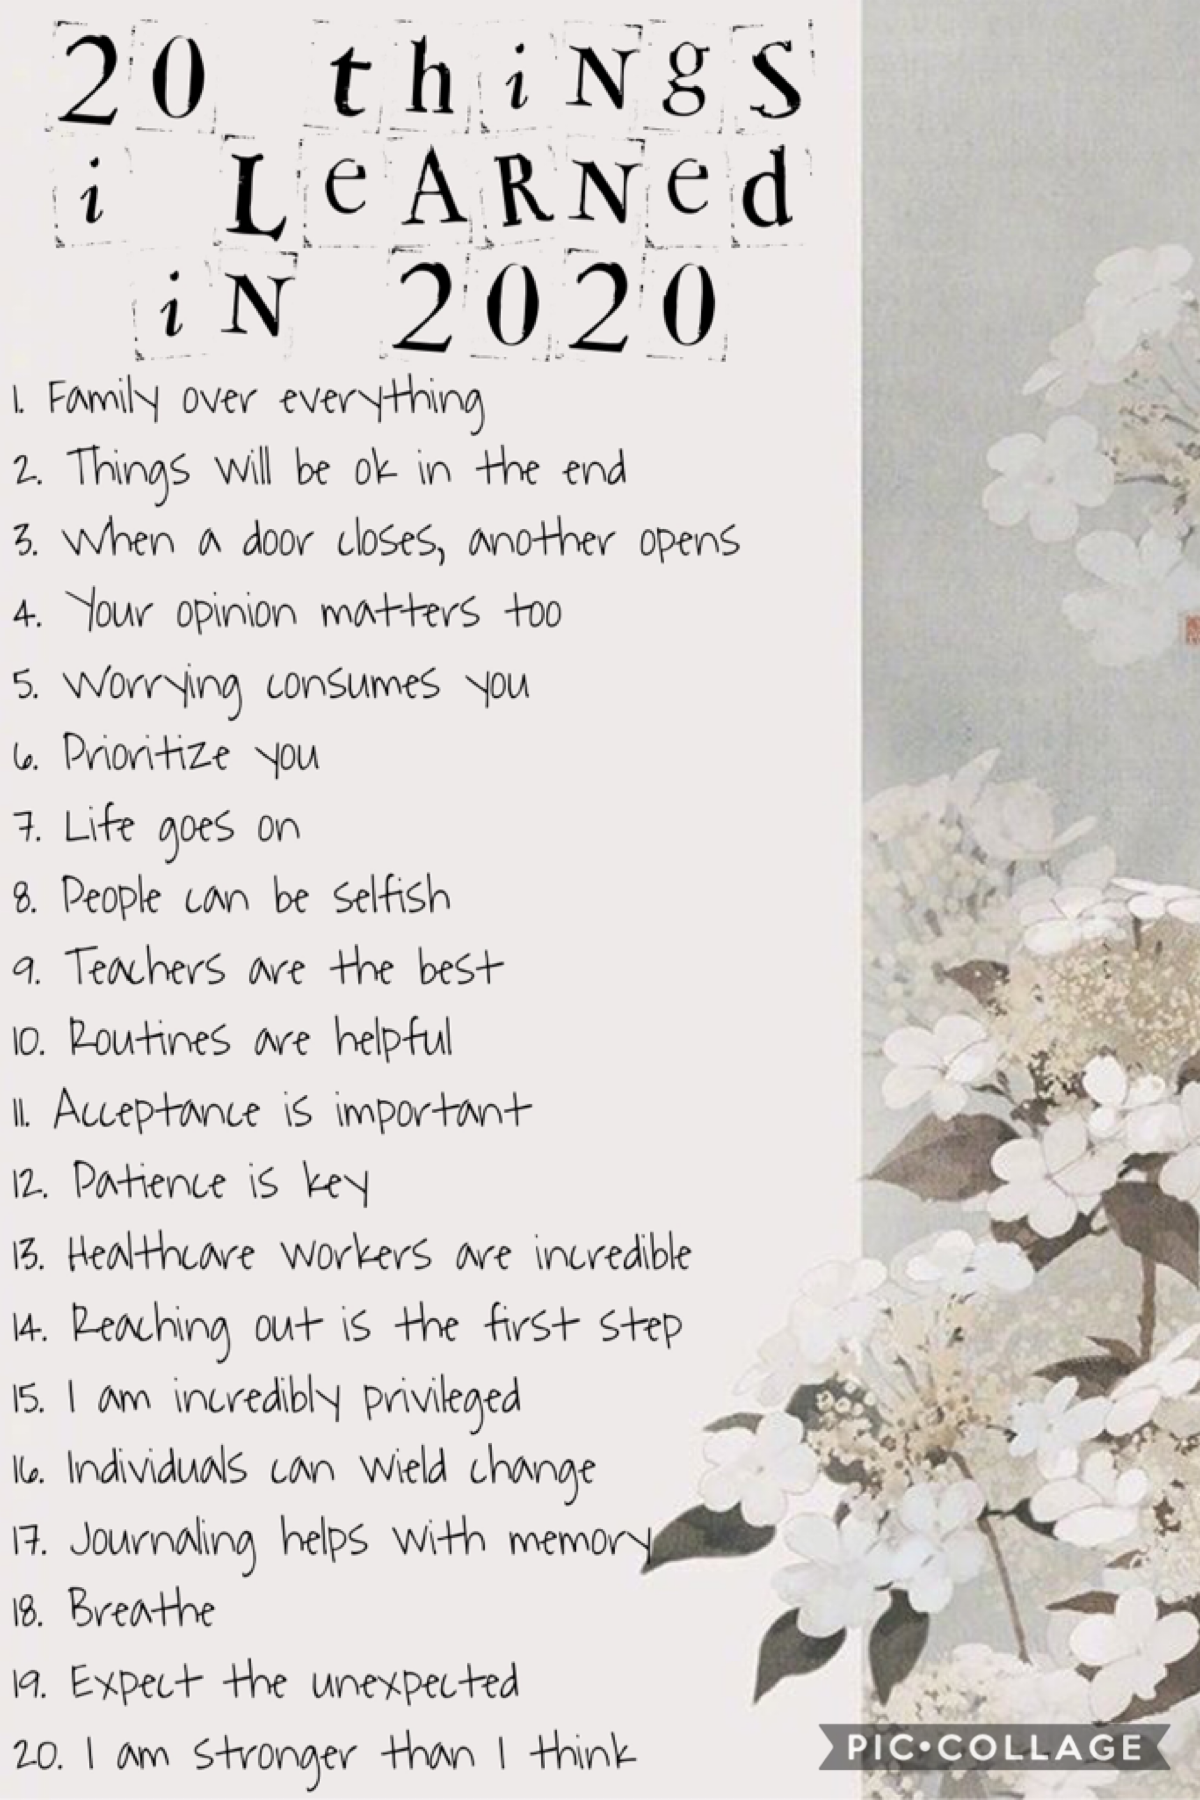 12/31/20   2020 gave me 20/20 vision. Forgot where I heard that but I most definitely agree. Little less than 12 hours to go before the new year.